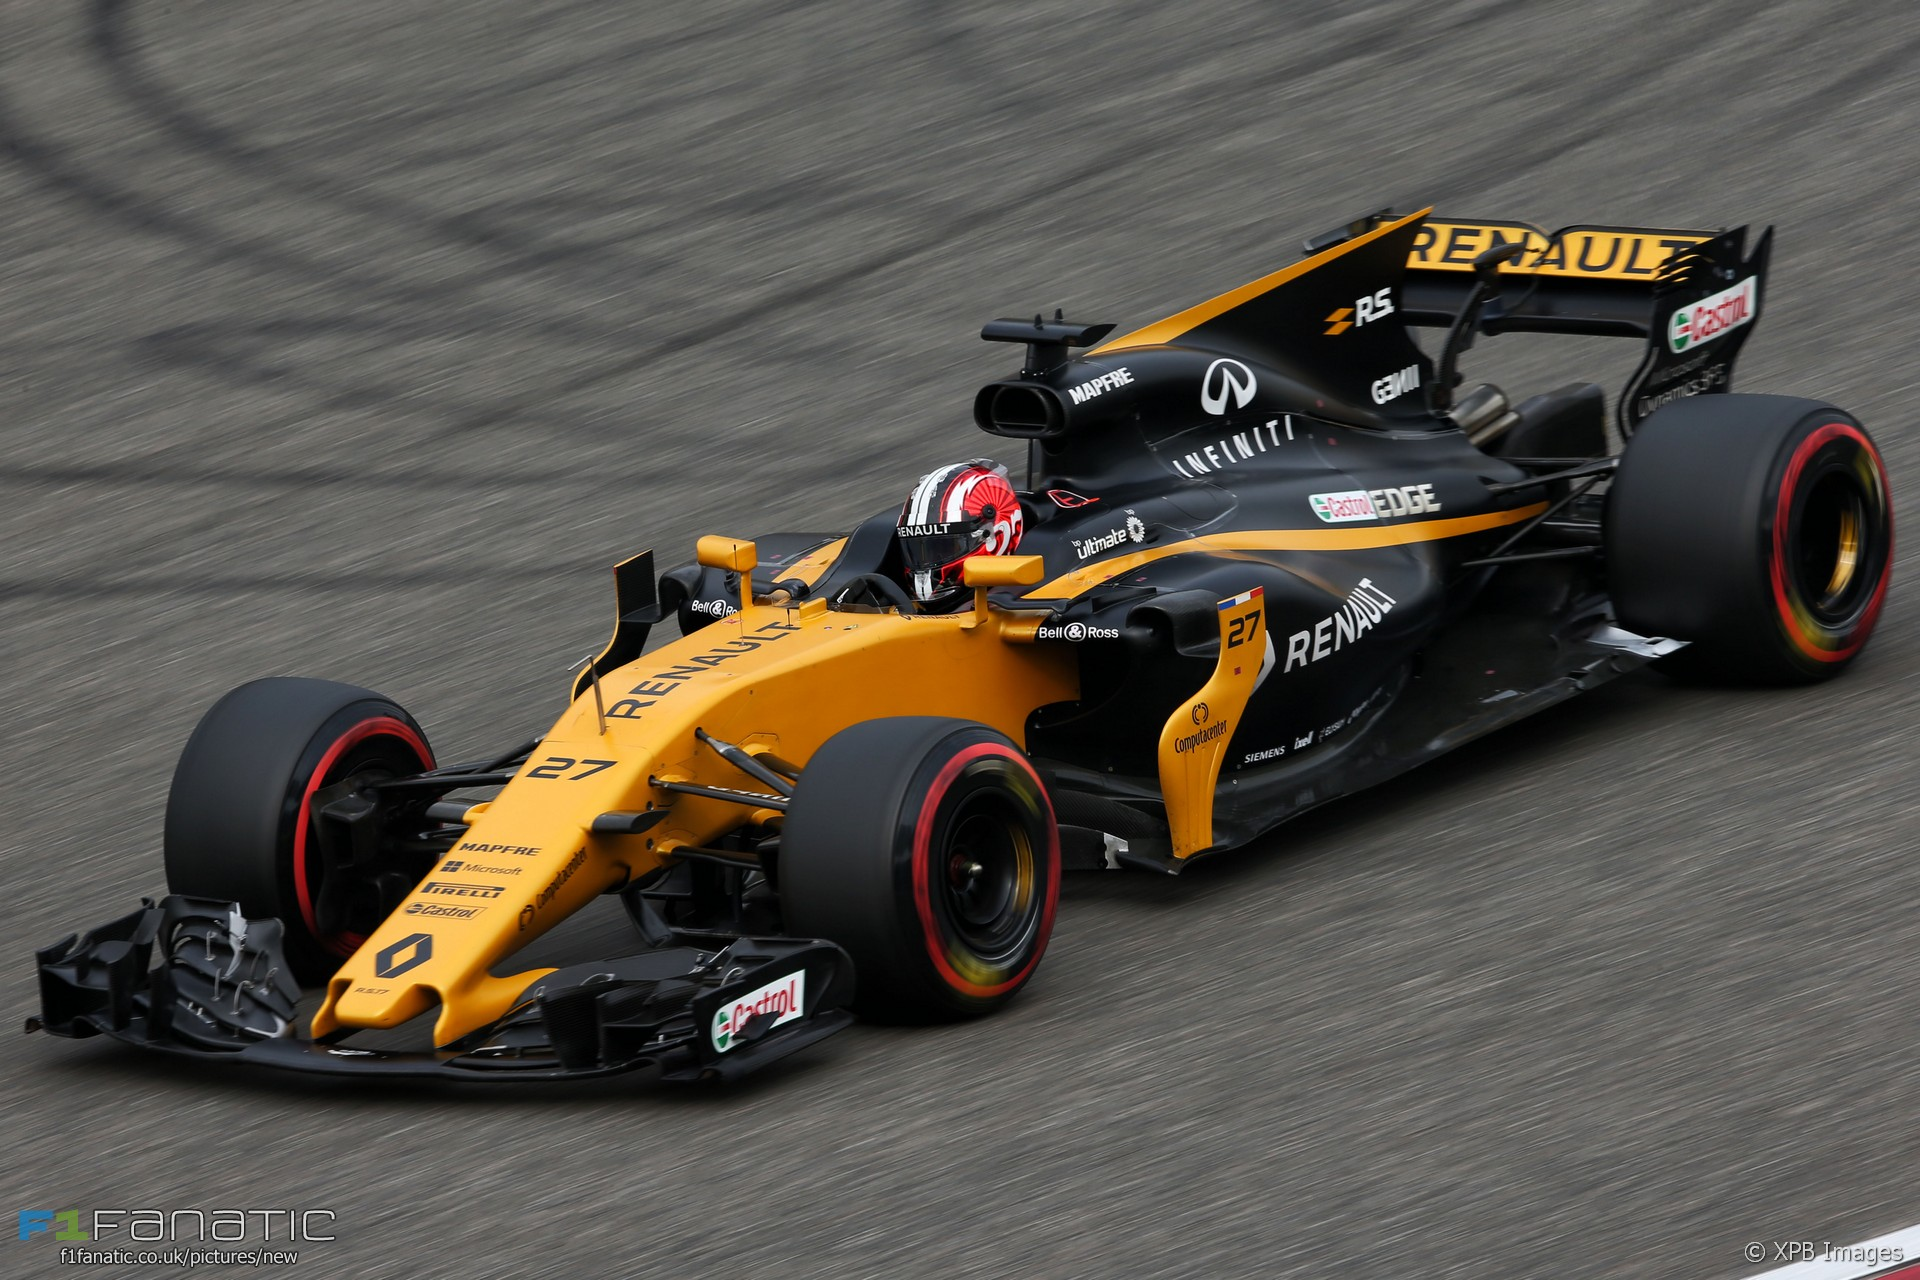 hulkenberg given two penalties for safety car errors f1 fanatic. Black Bedroom Furniture Sets. Home Design Ideas